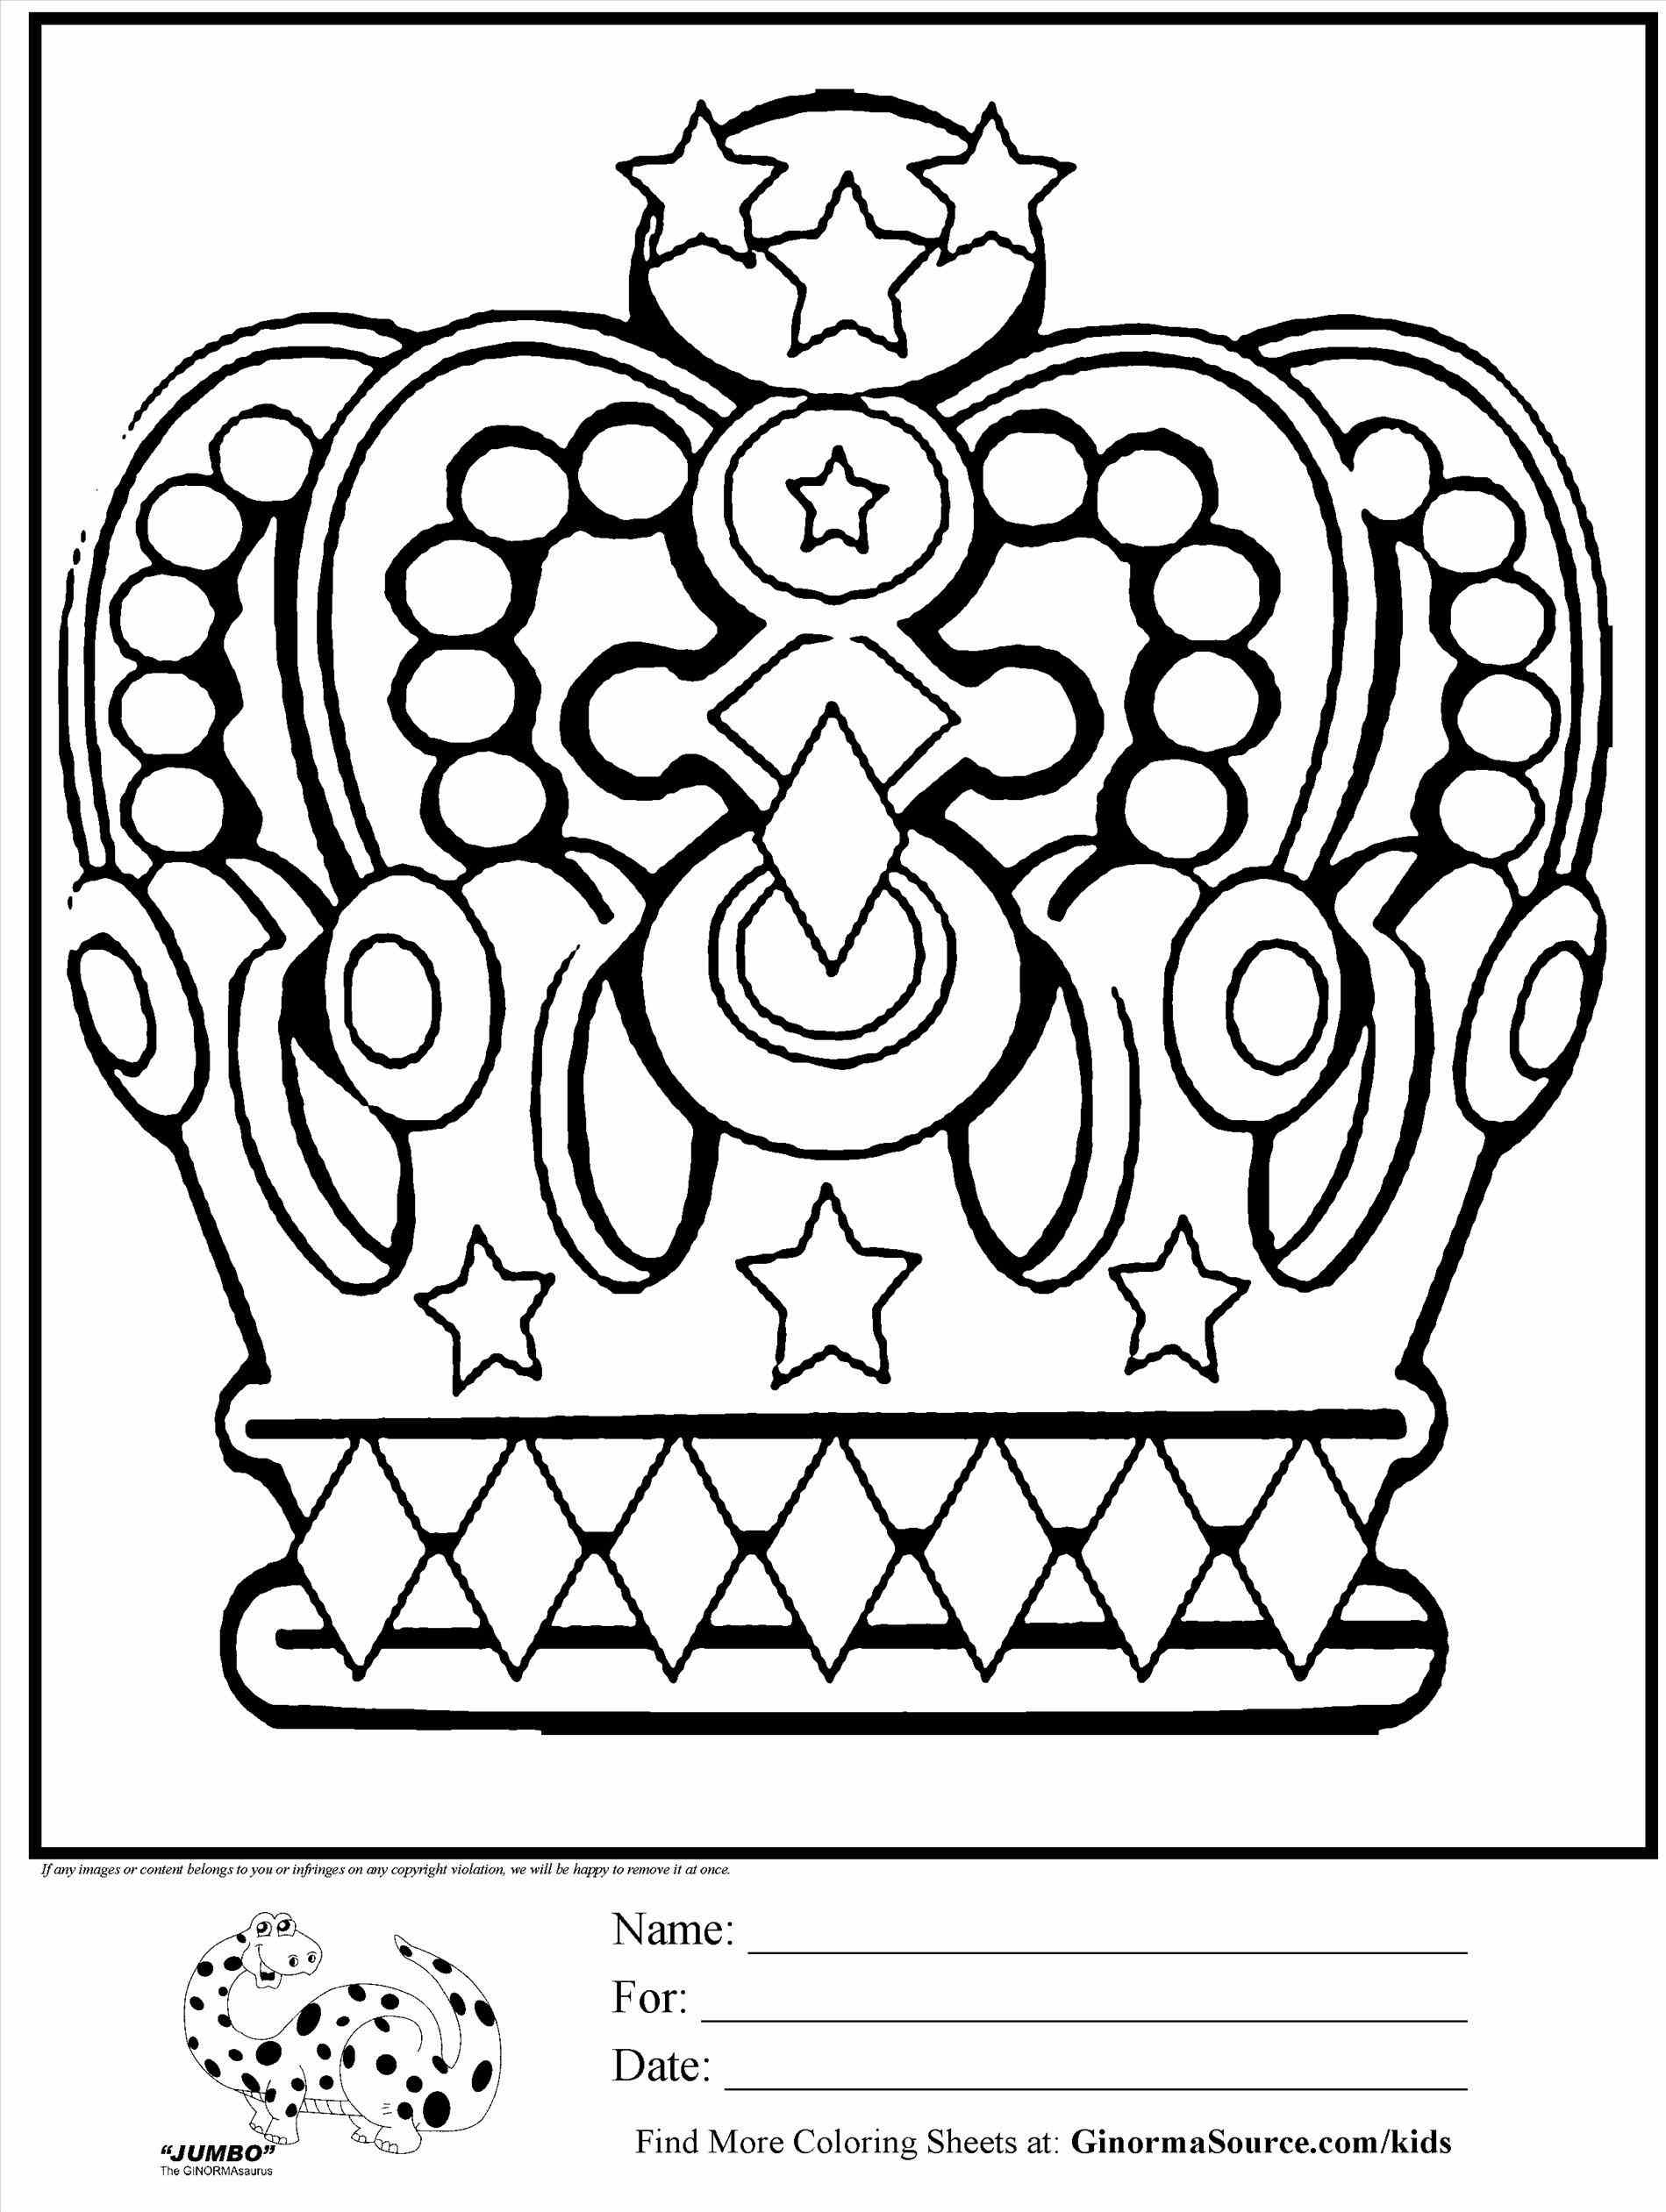 1899x2522 Beautiful Tiara Coloring Page For Girls Lovely Adult Top Crown